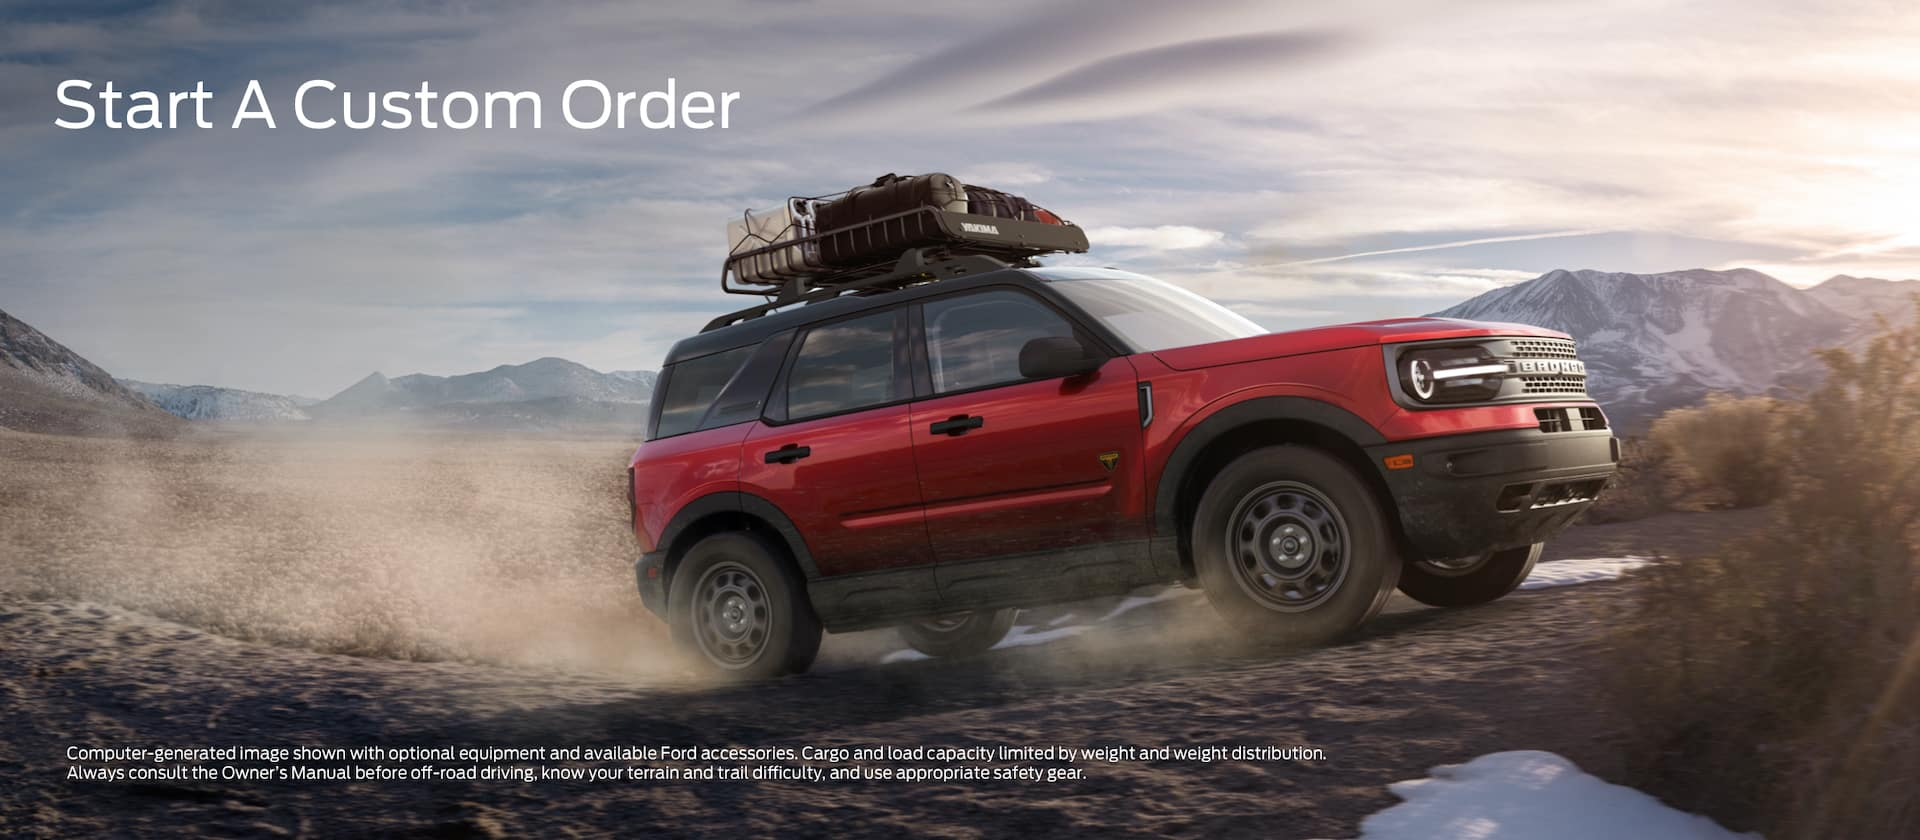 Start a Custom Order. Computer generated image shown with optional equipment and available Ford accessories. Cargo and load capacity by weight and weight distribution. Always consult the Owner's Manual before off-road driving know your terrain and trail difficulty and use appropriate safety gear.